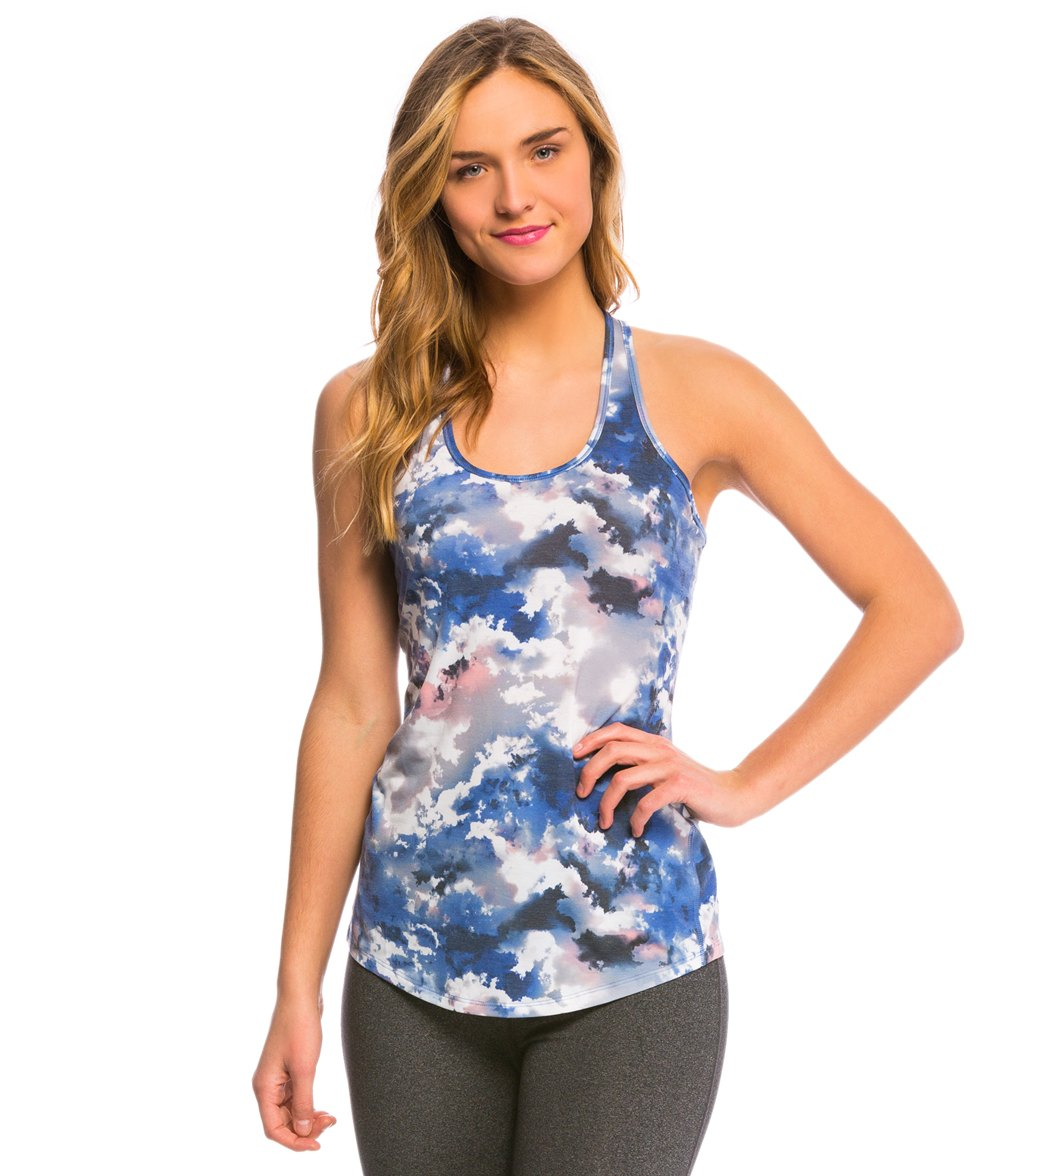 687a987a4f4911 ... Lucy Women s Print Workout Racerback Tank Top. Play Video. MODEL  MEASUREMENTS